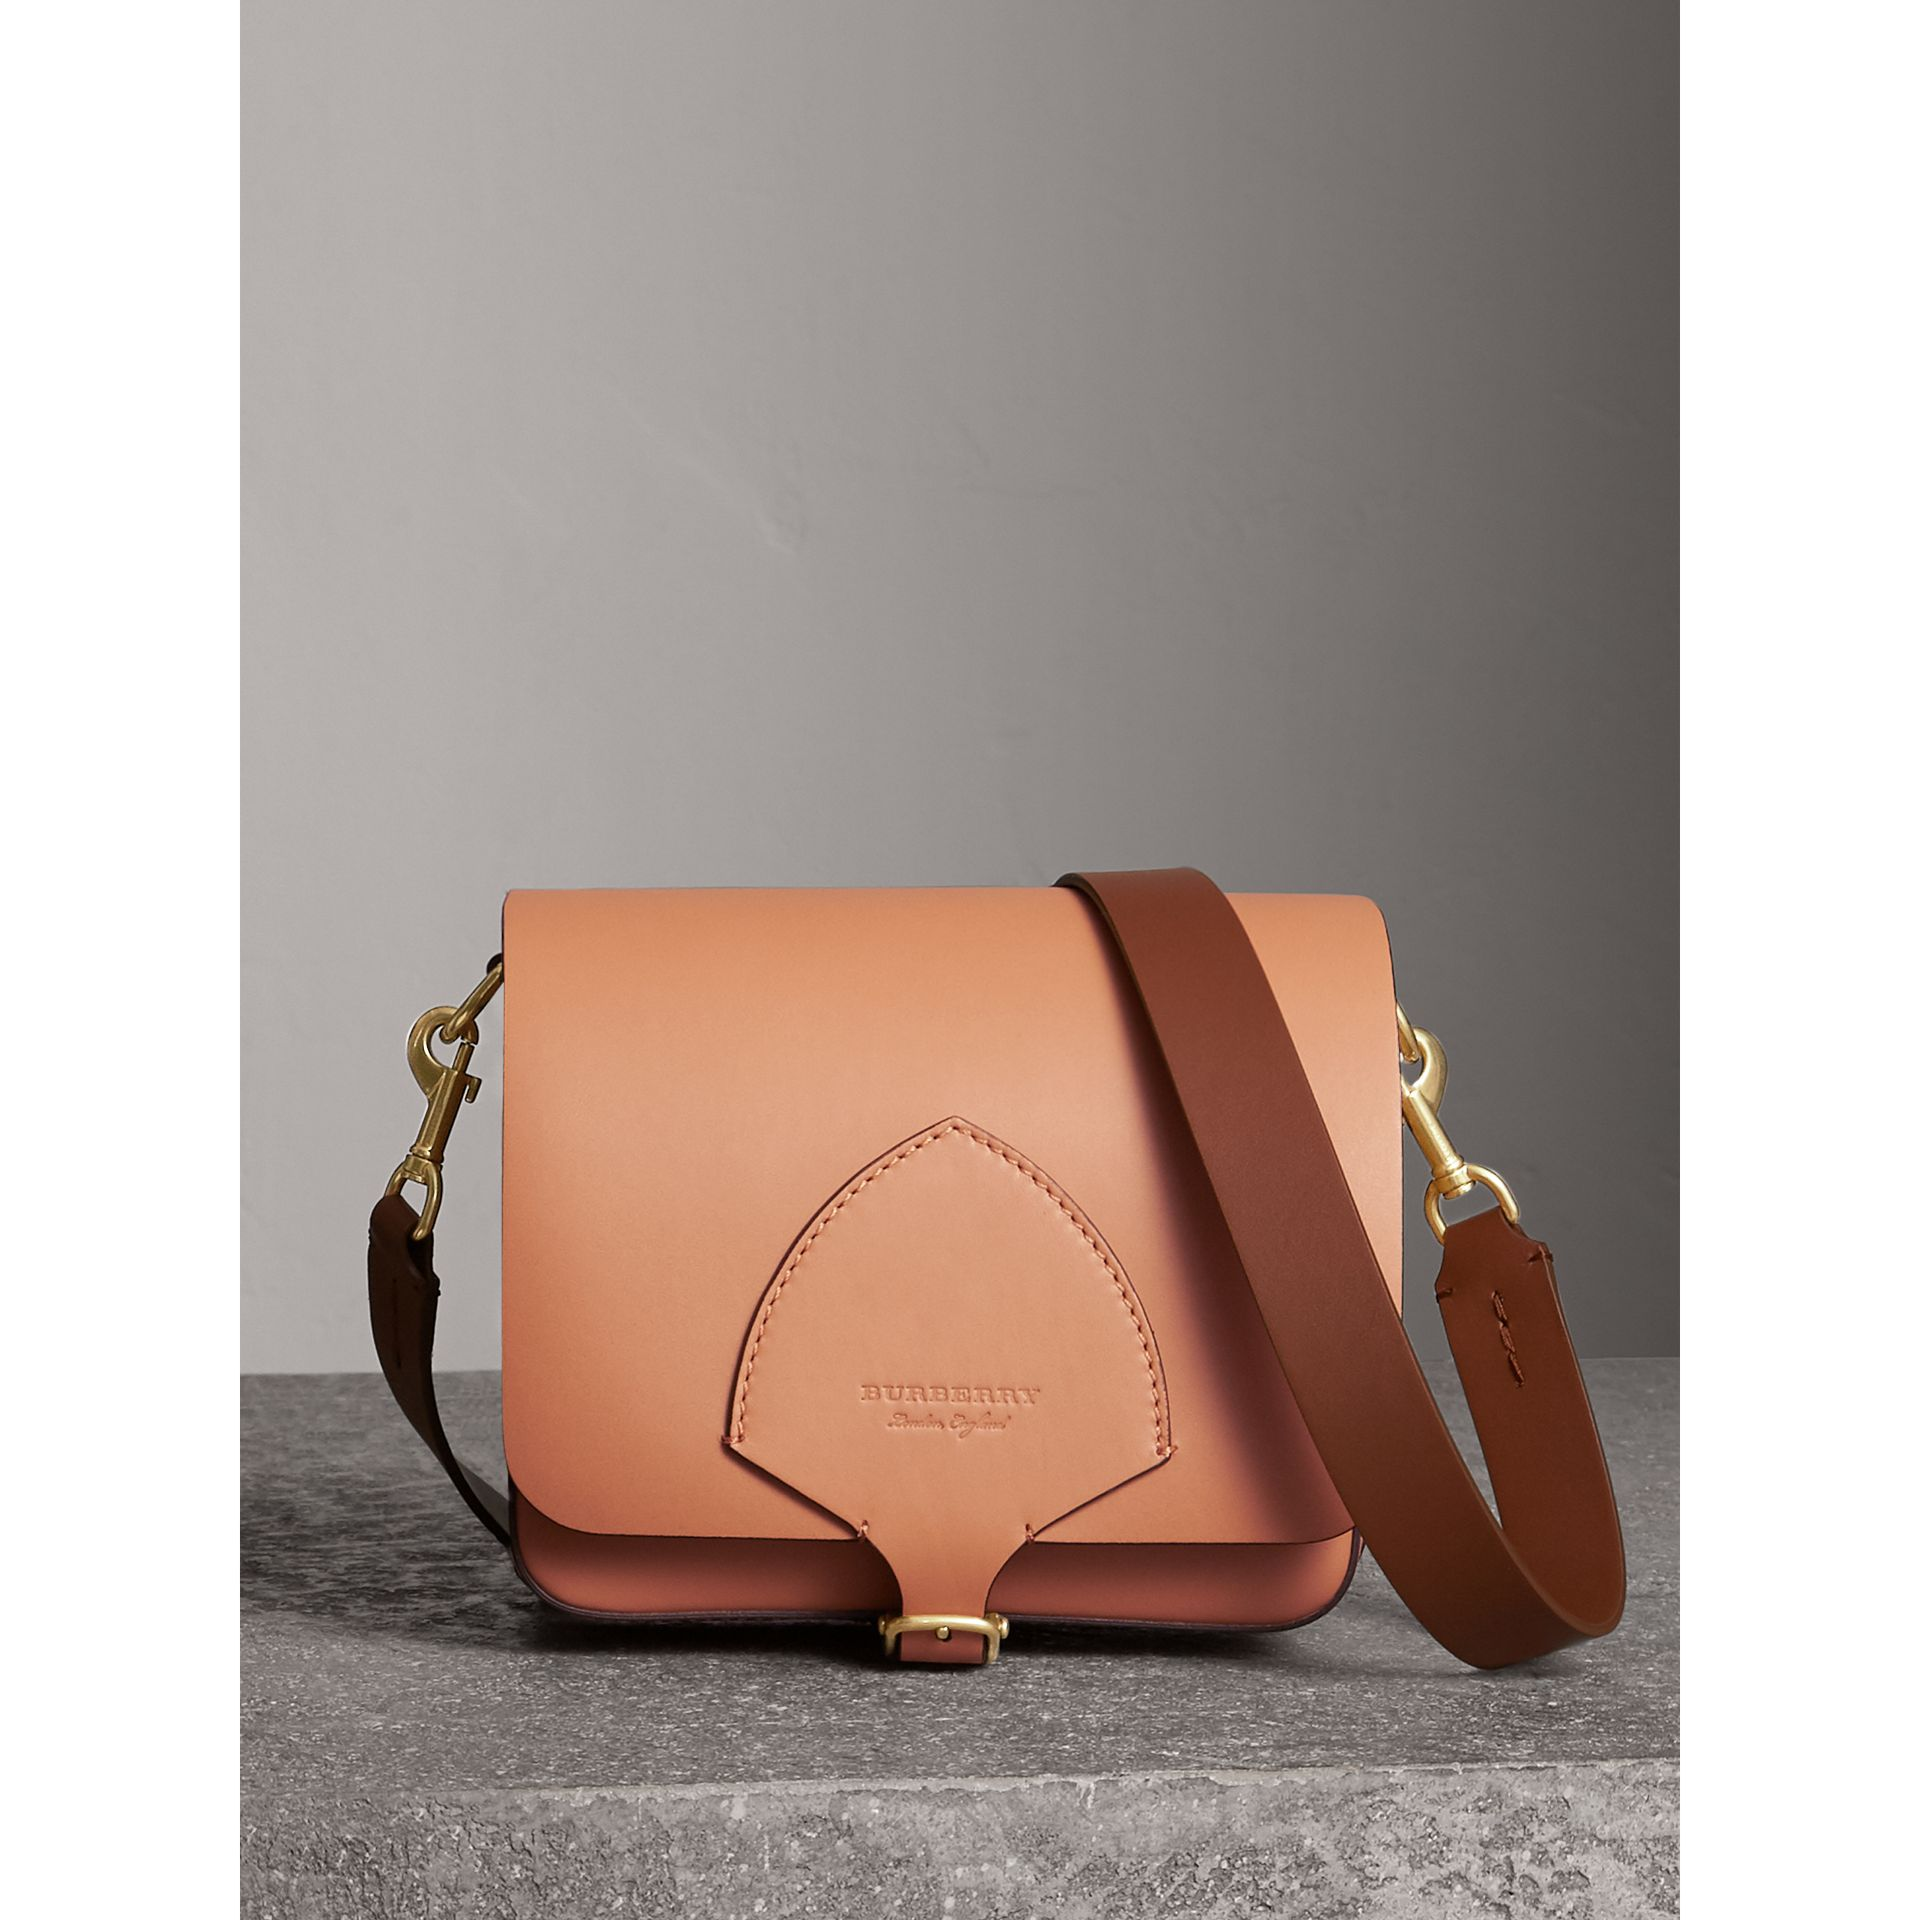 Sac The Satchel carré en cuir (Camel) - Femme | Burberry - photo de la galerie 0